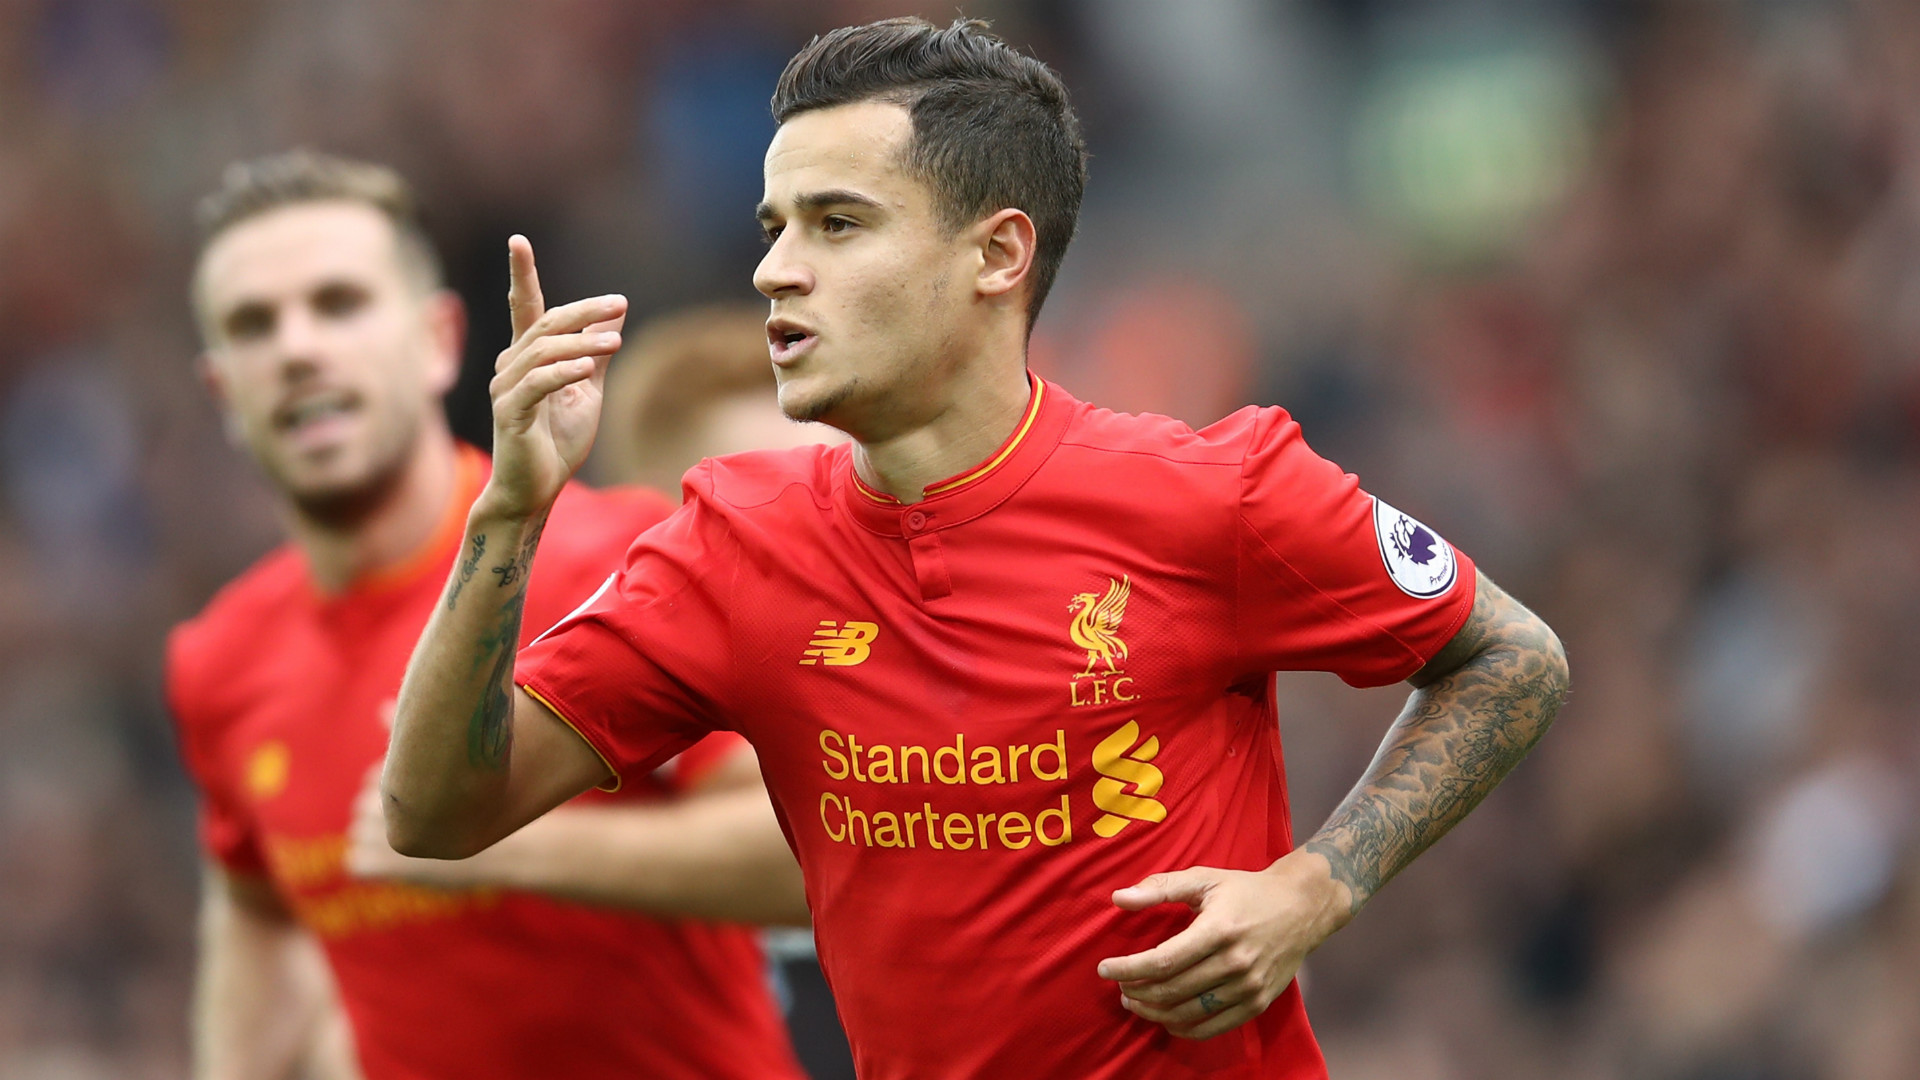 Outshining Hazard and out-assisting Ozil - is Coutinho the Premier League's best player?